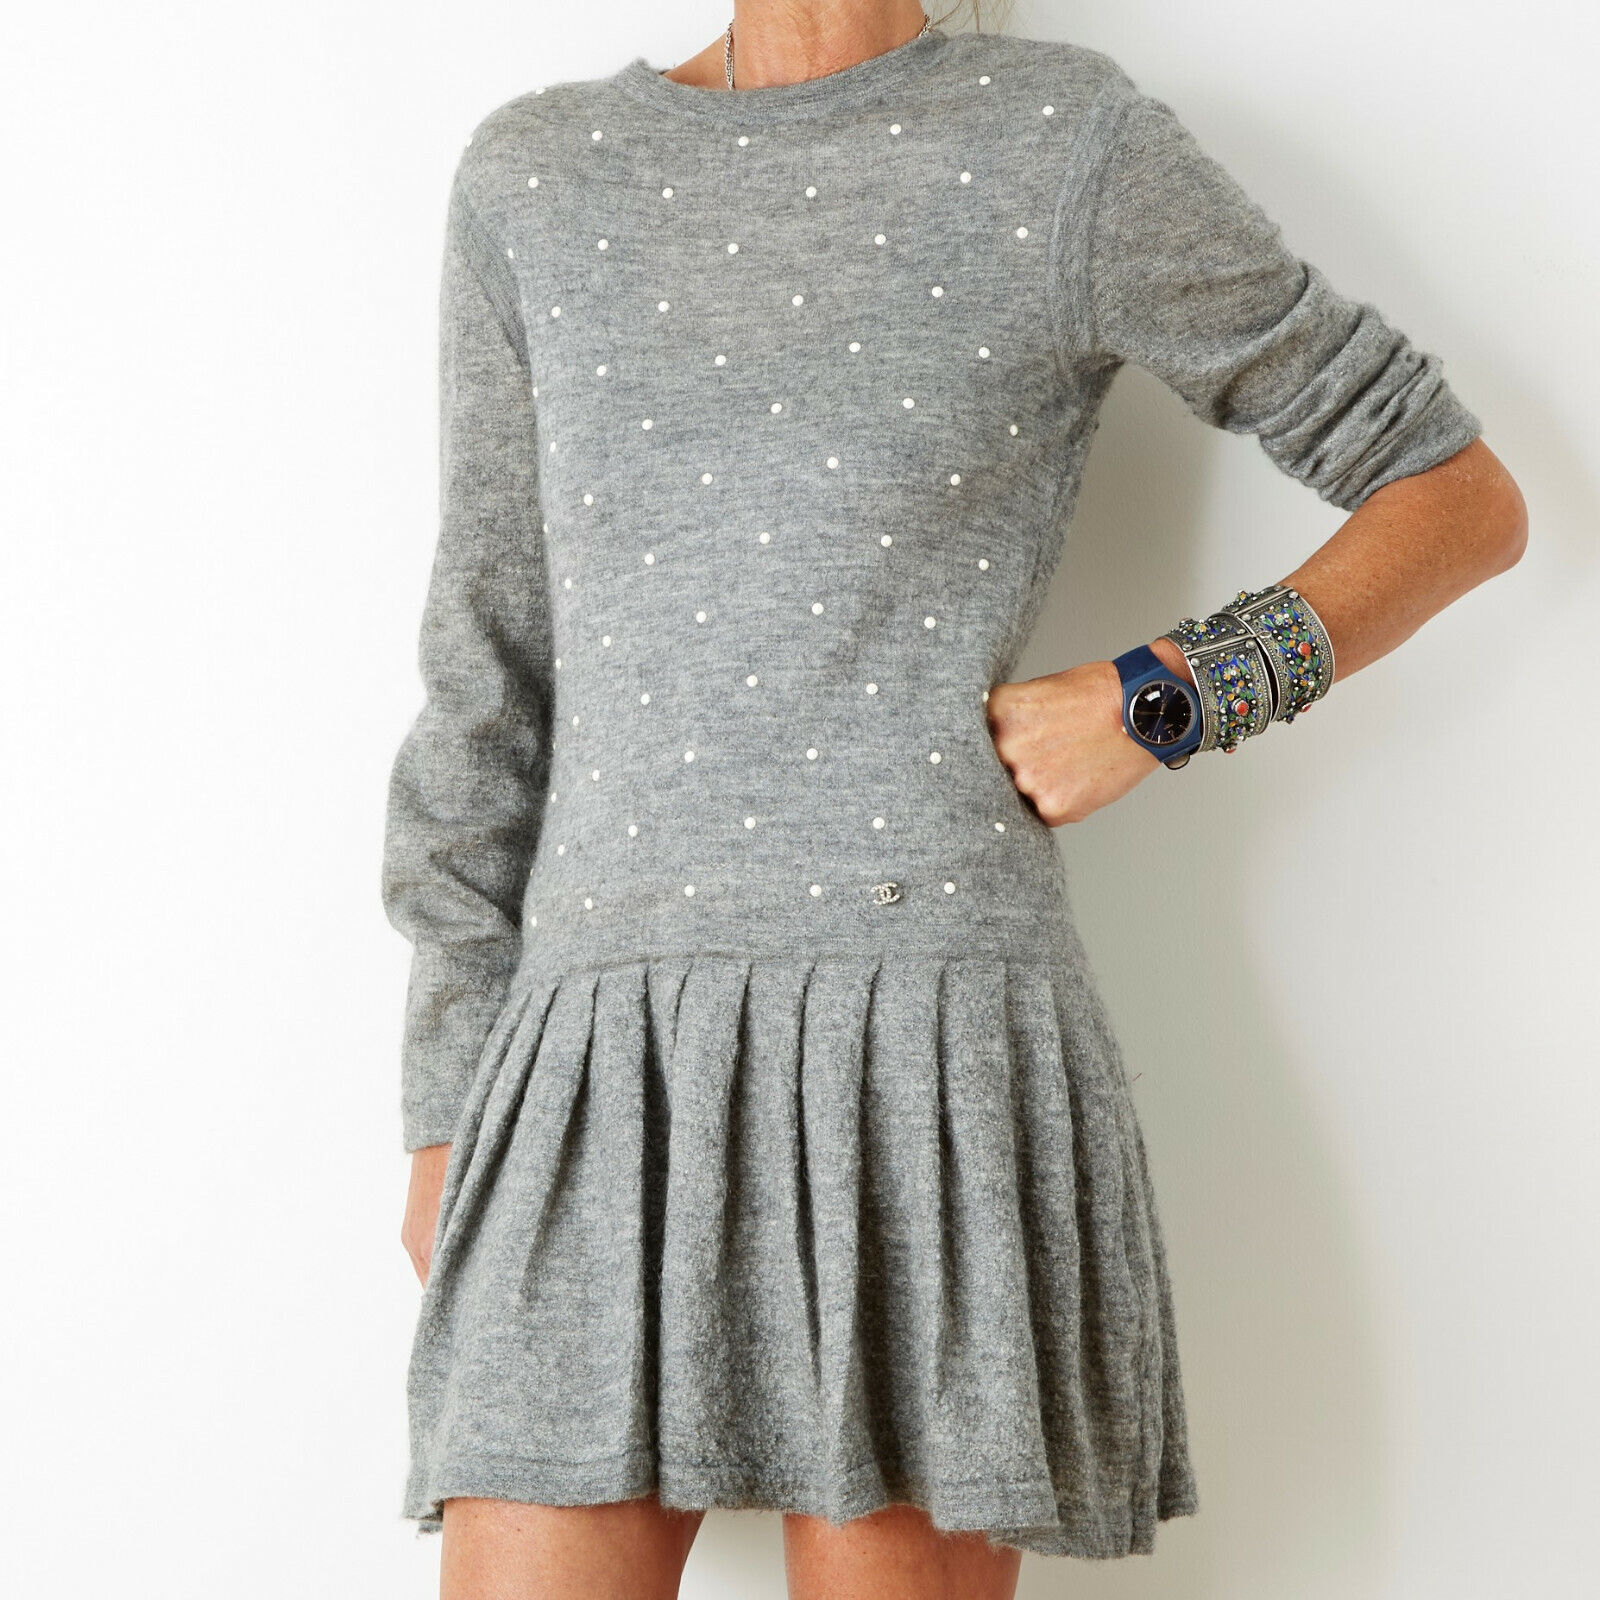 Chanel robe dress grey cashmere pearls fr38